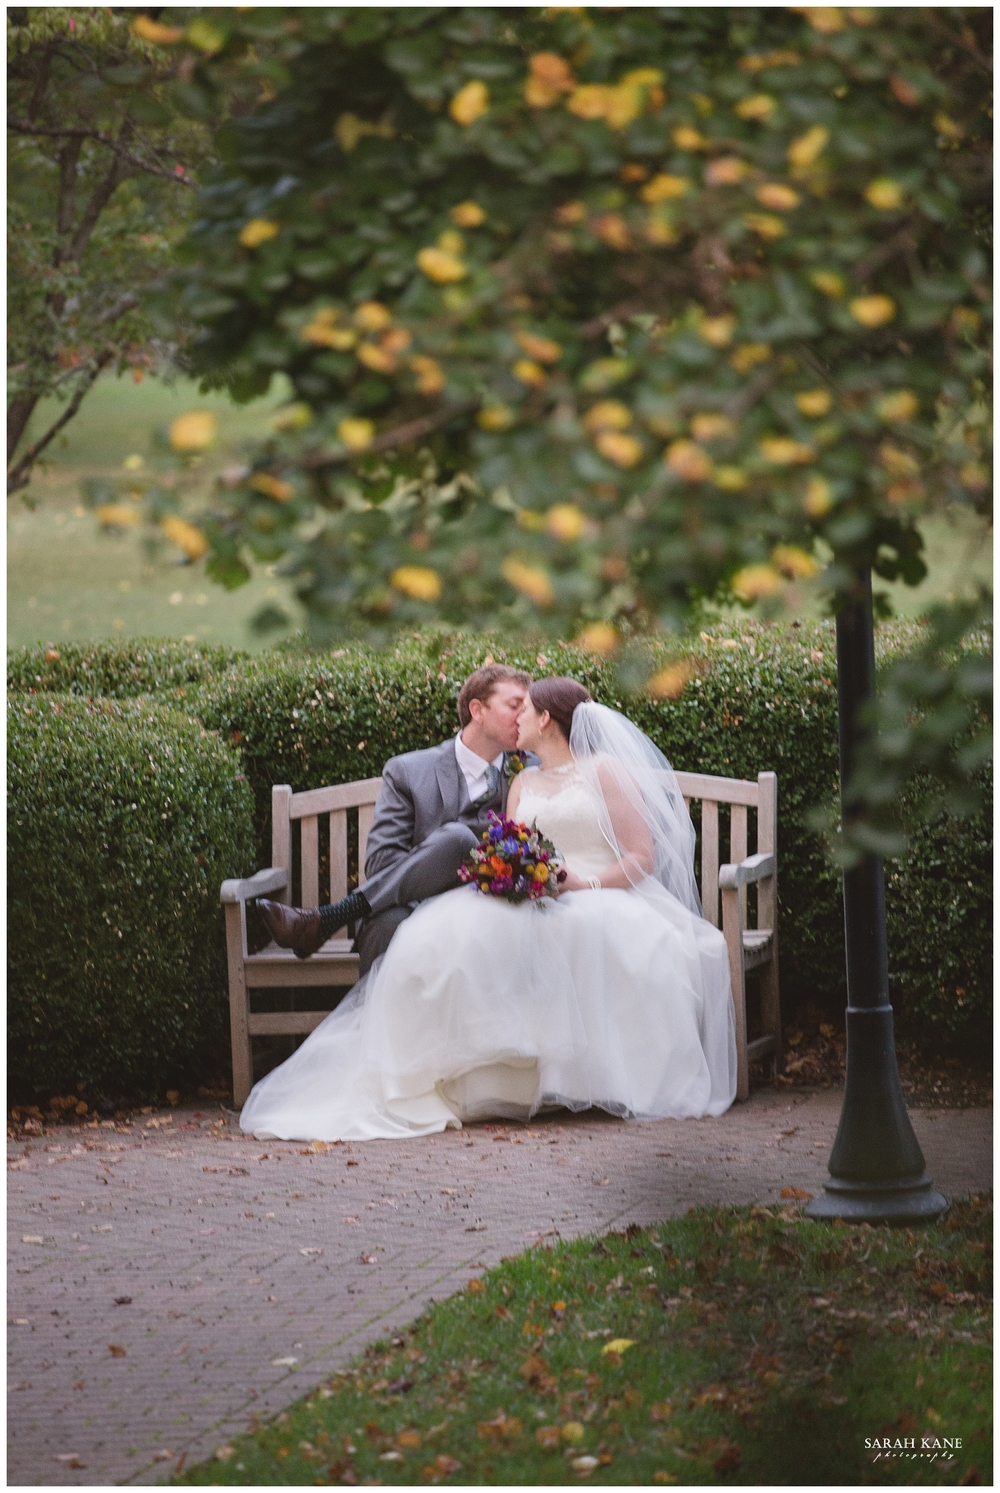 Wedding at the Manor House at Kings Charter | Sarah Kane Photography